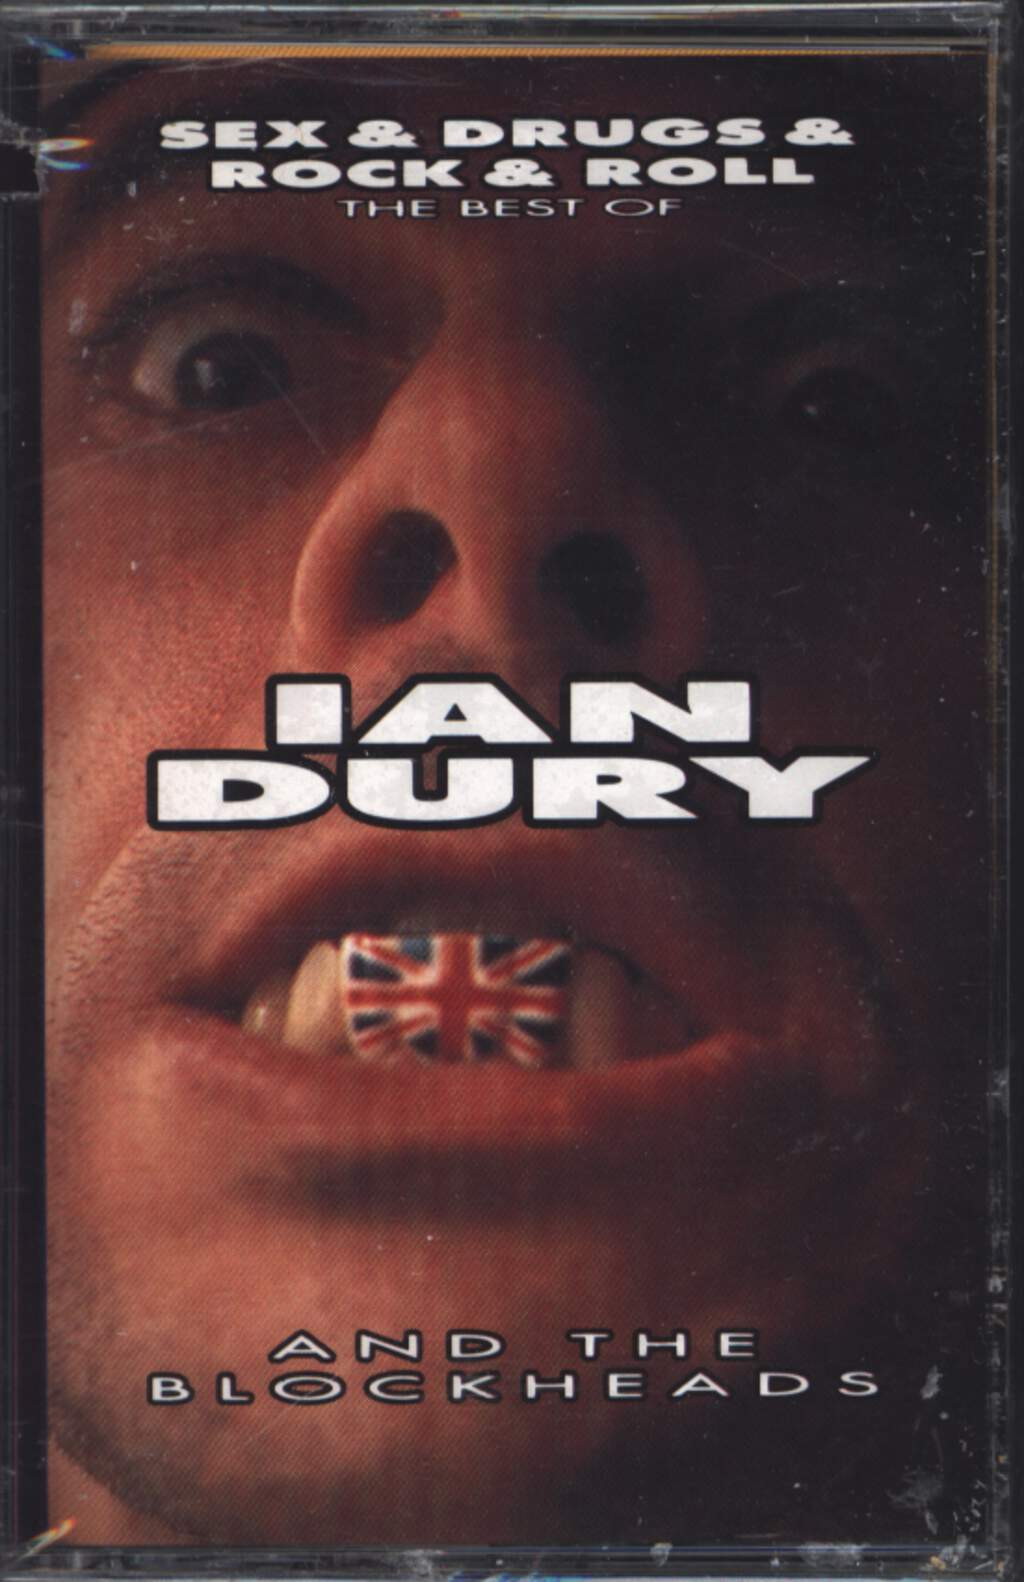 Ian Dury And The Blockheads: Sex & Drugs & Rock & Roll: The Best Of, Compact Cassette